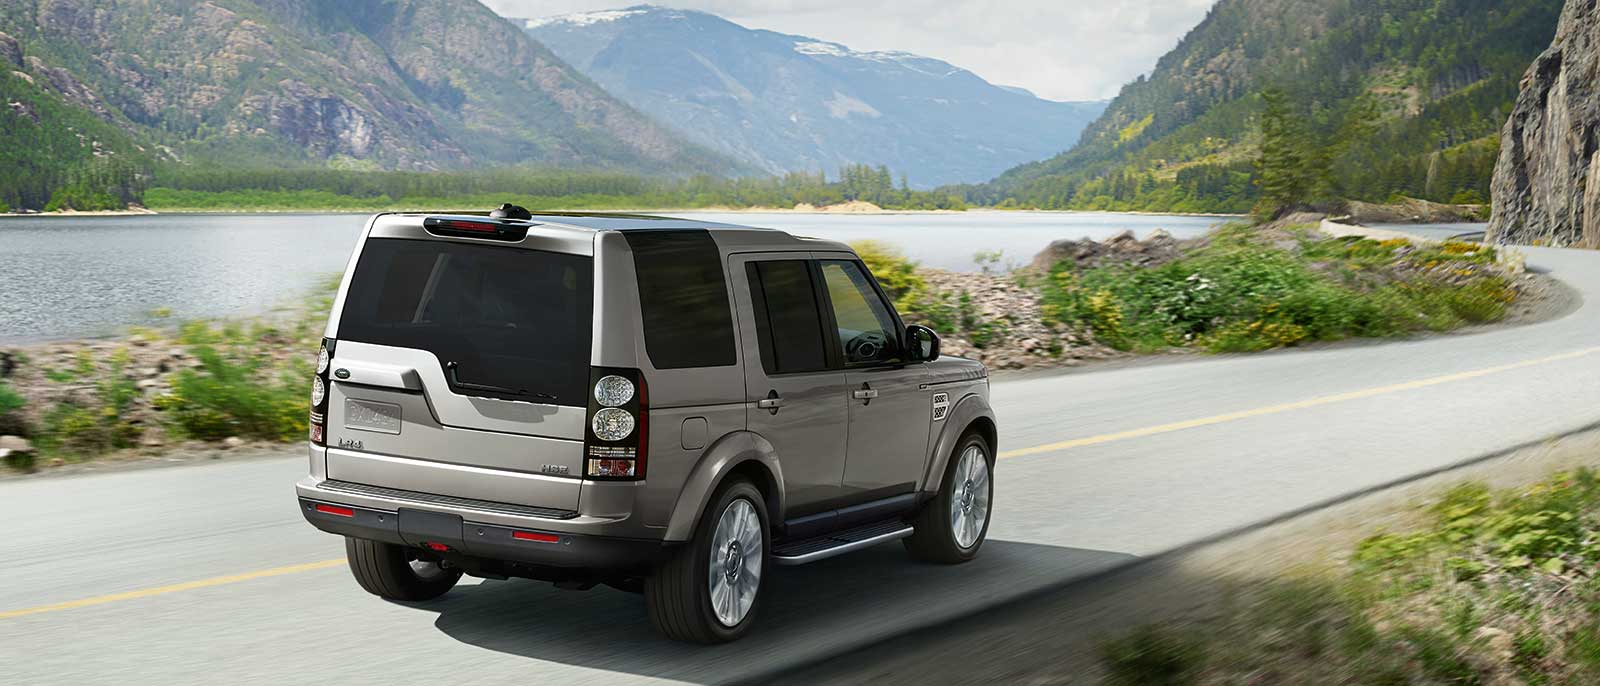 2016 Land Rover LR4 rear view; driving past mountains